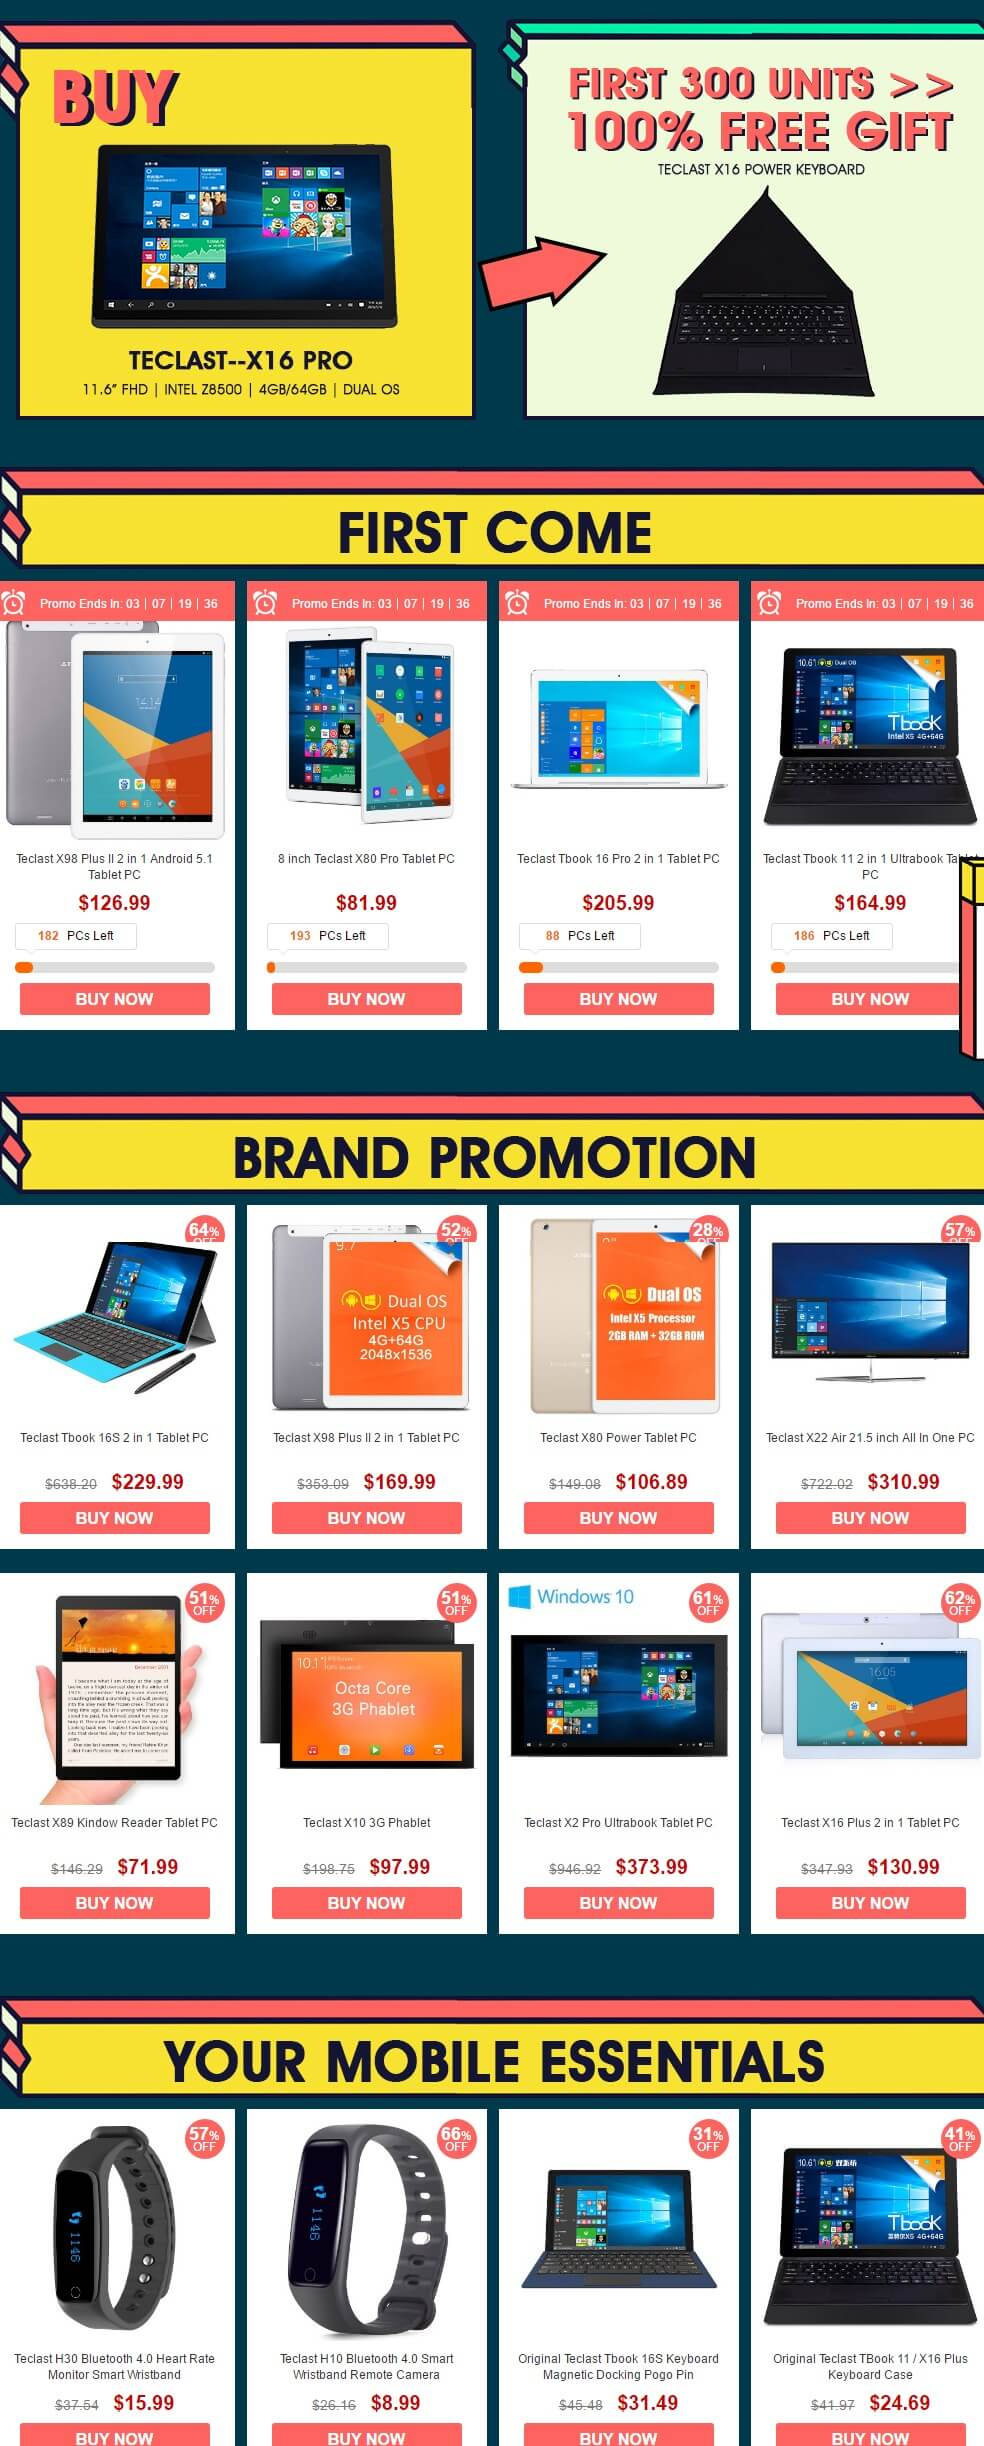 Teclast Carnival Promotional Sale -All listed Products